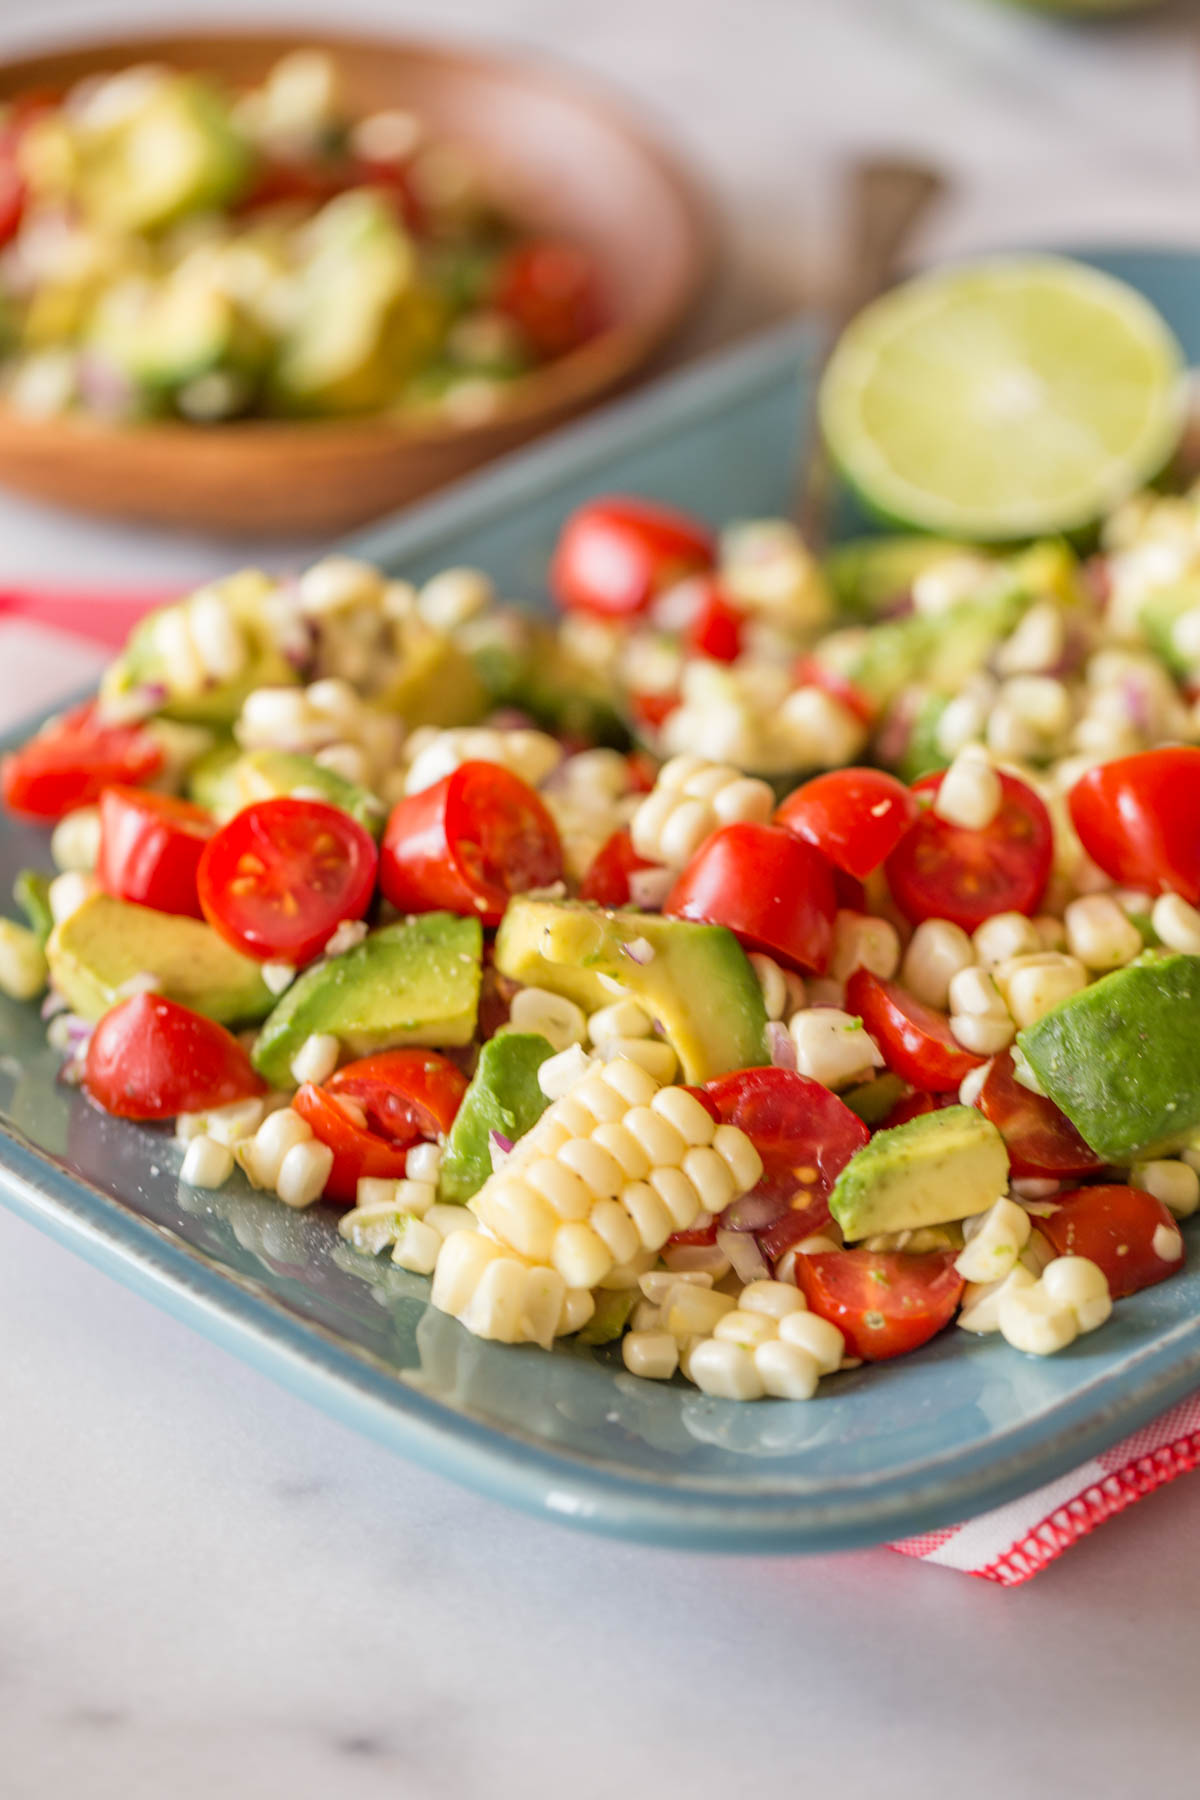 Corn, Tomato, and Avocado Salad on a platter, and a wood plate with a serving of the salad on it in the background.